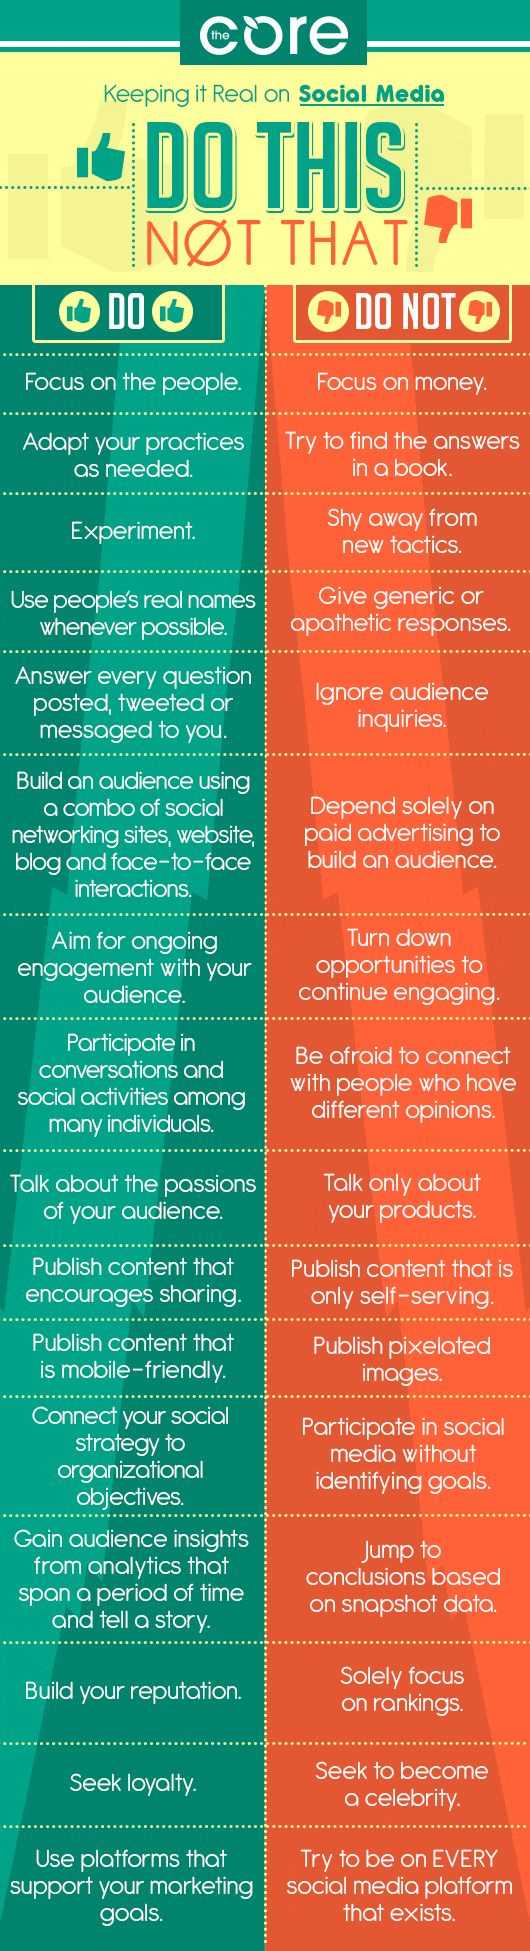 Need a simple list of what to do and what not to do on #SocialMedia? This is a great list where you can encourage engagement and do the right things. Perfect if you aren't sure where to start! #SocialMediaMarketing #SocialMediaManagement